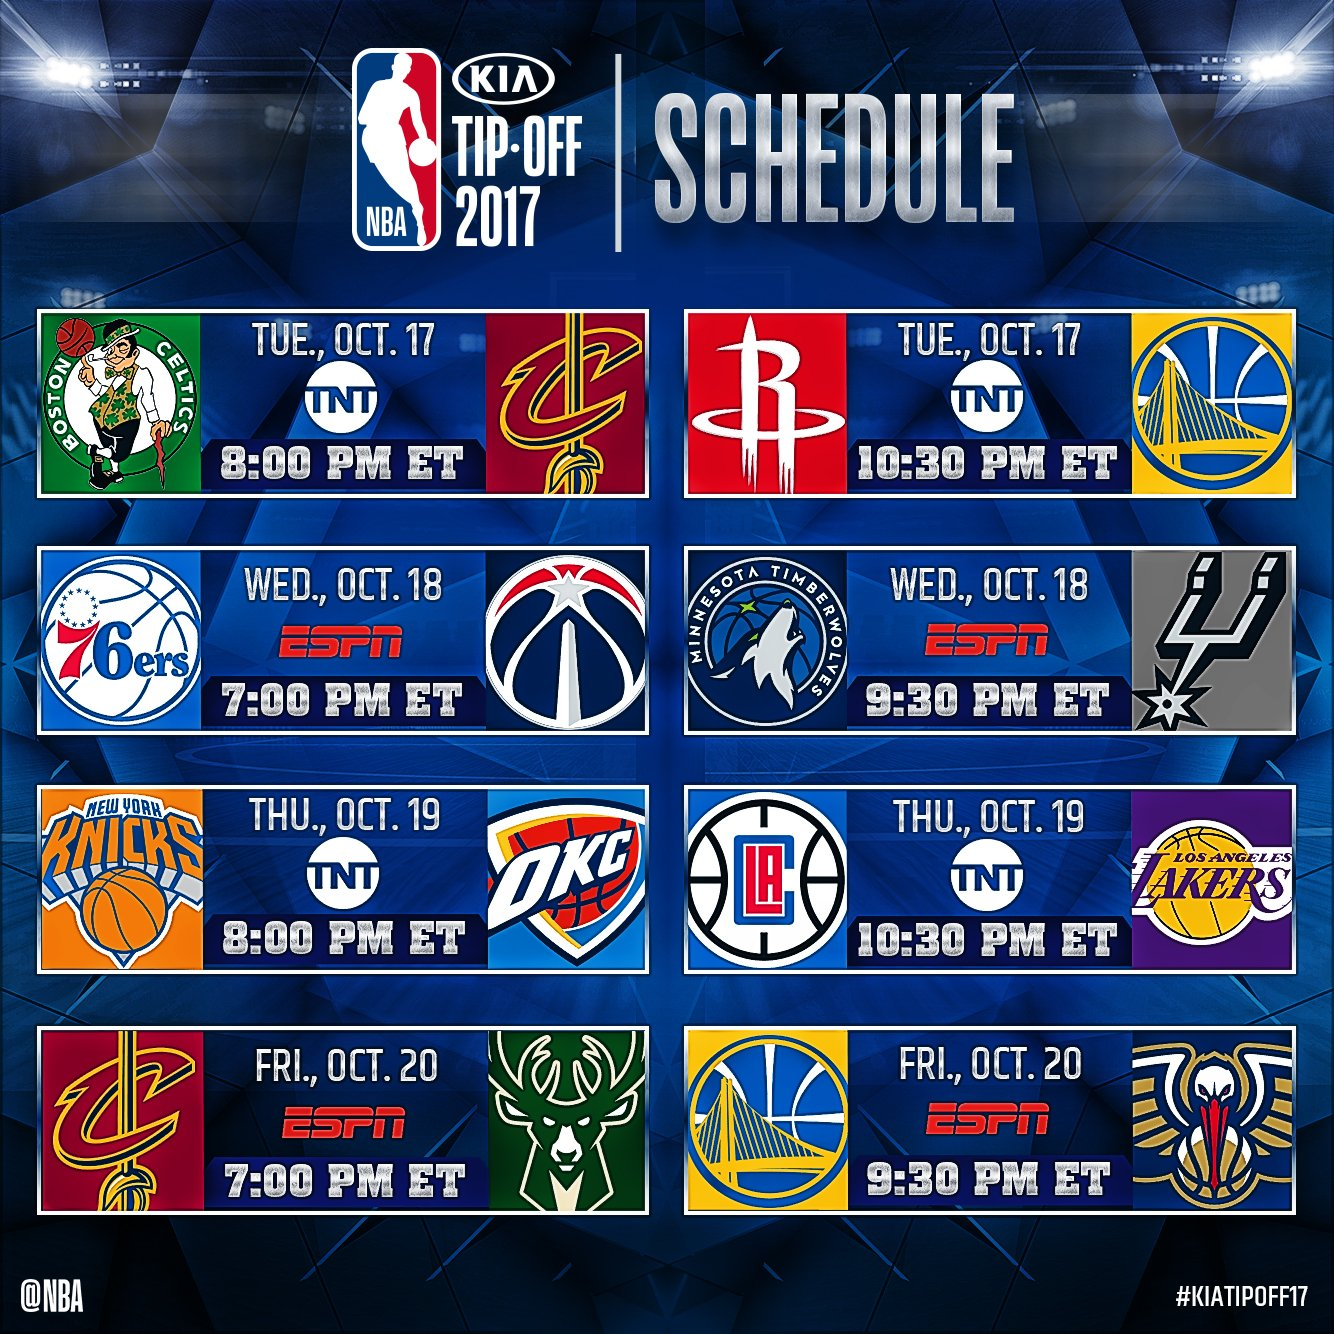 NBA unveils national TV schedule for #KiaTipOff17 and #NBAXmas: https://t.co/ZiWAkIiPpE https://t.co/paIXdM69TL